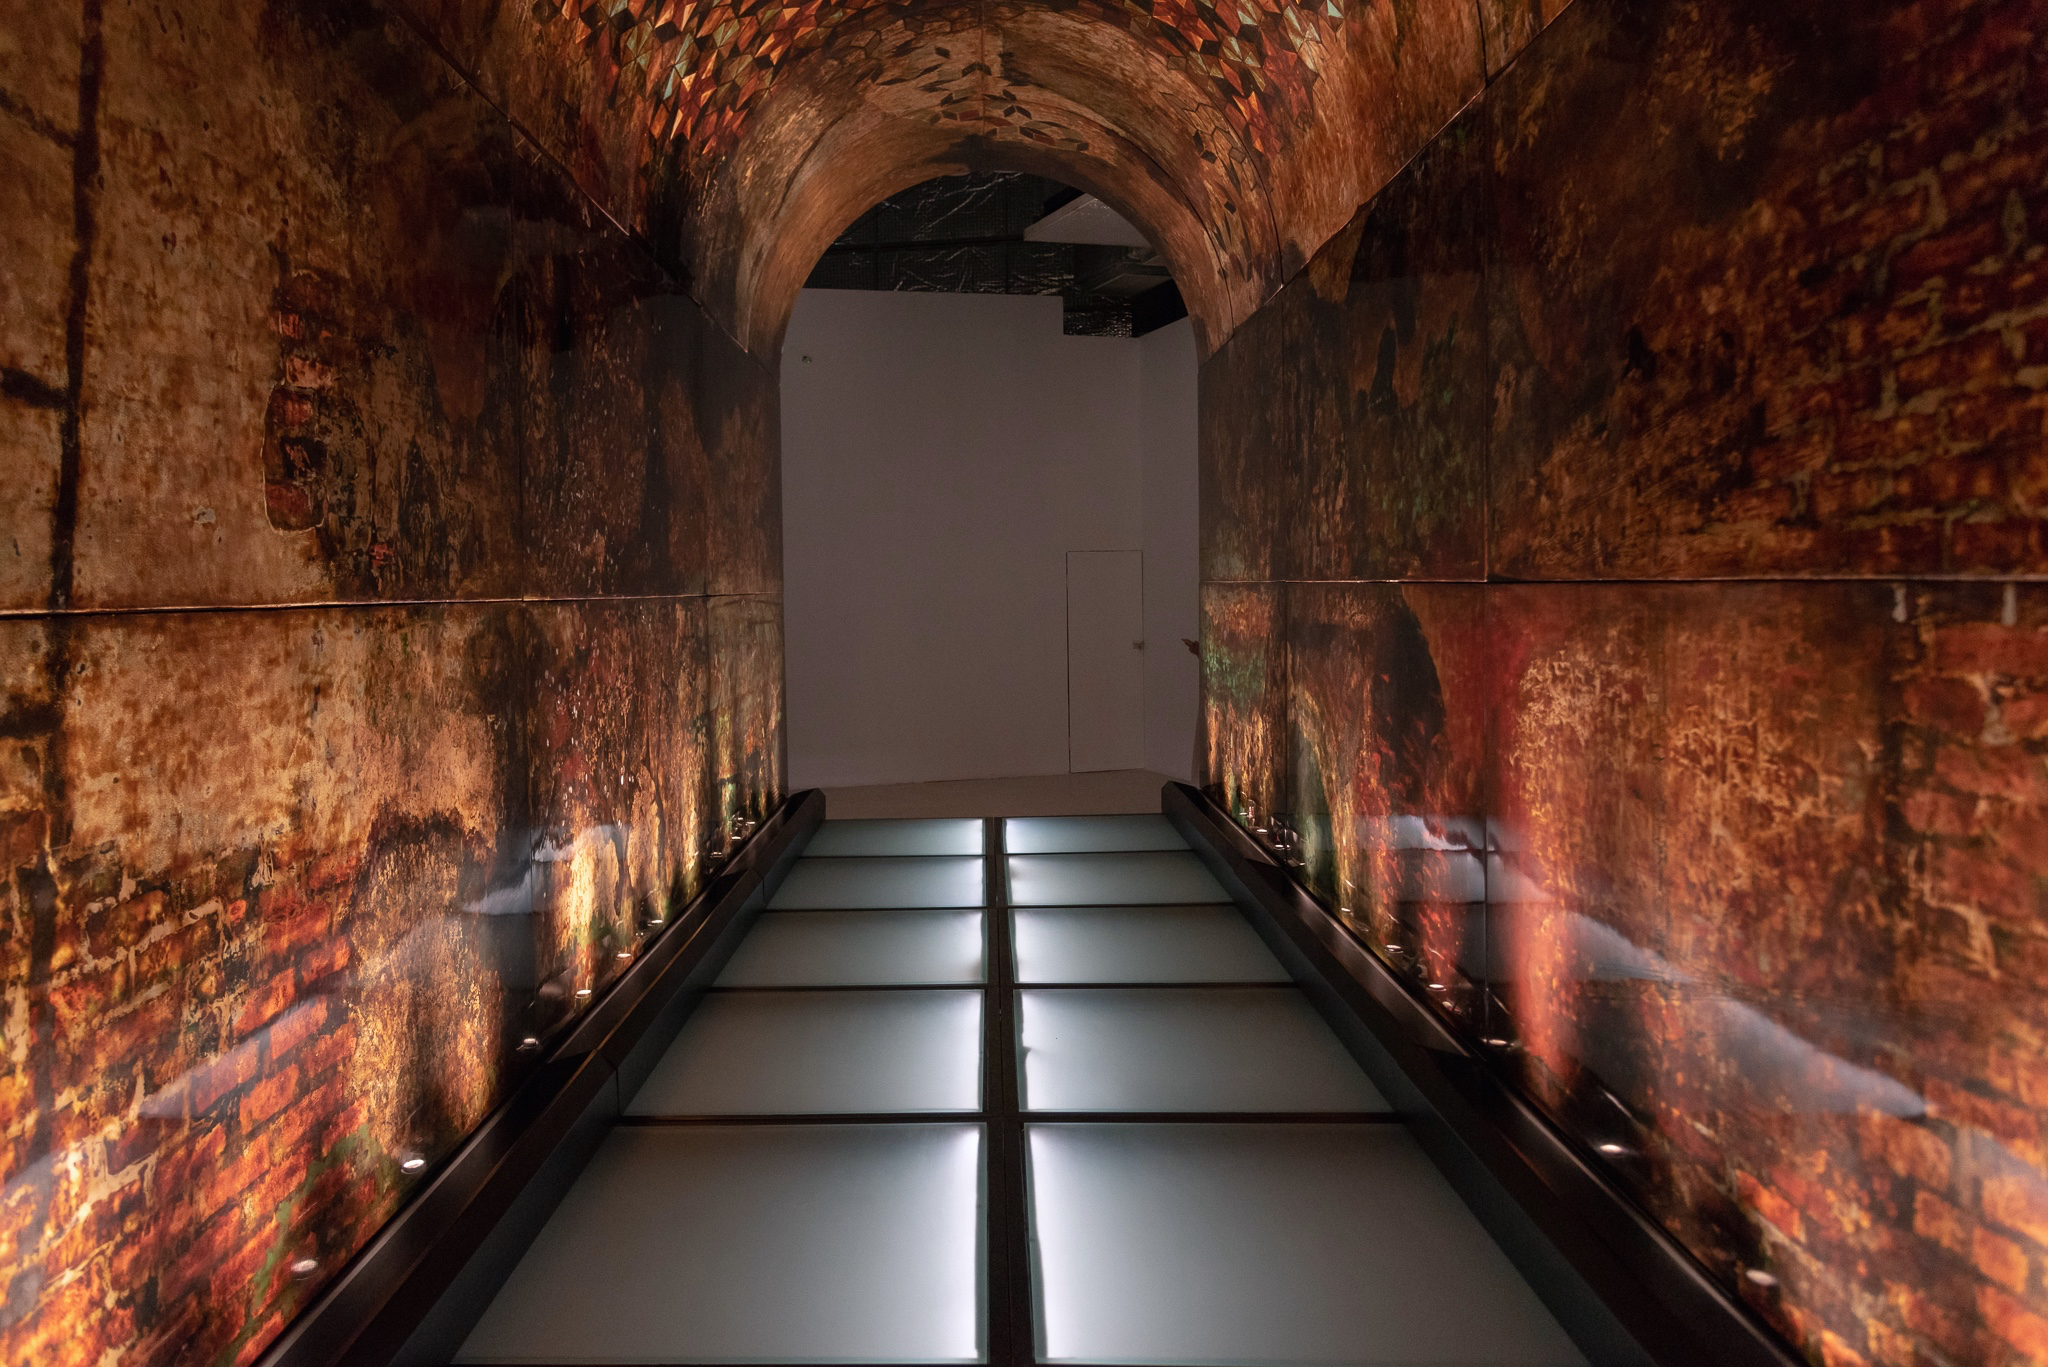 Oanh Phi Phi, 'Specula', 2007- 2009, Pictorial installation of sơn ta resin with pigment, gold, silver and aluminium leaf on fiberglass, reinforced epoxy composite board, with steel structure and glass flooring. Multiple components: installed dimensions 720 x 270 x 390cm (variable). Image courtesy of The Factory.